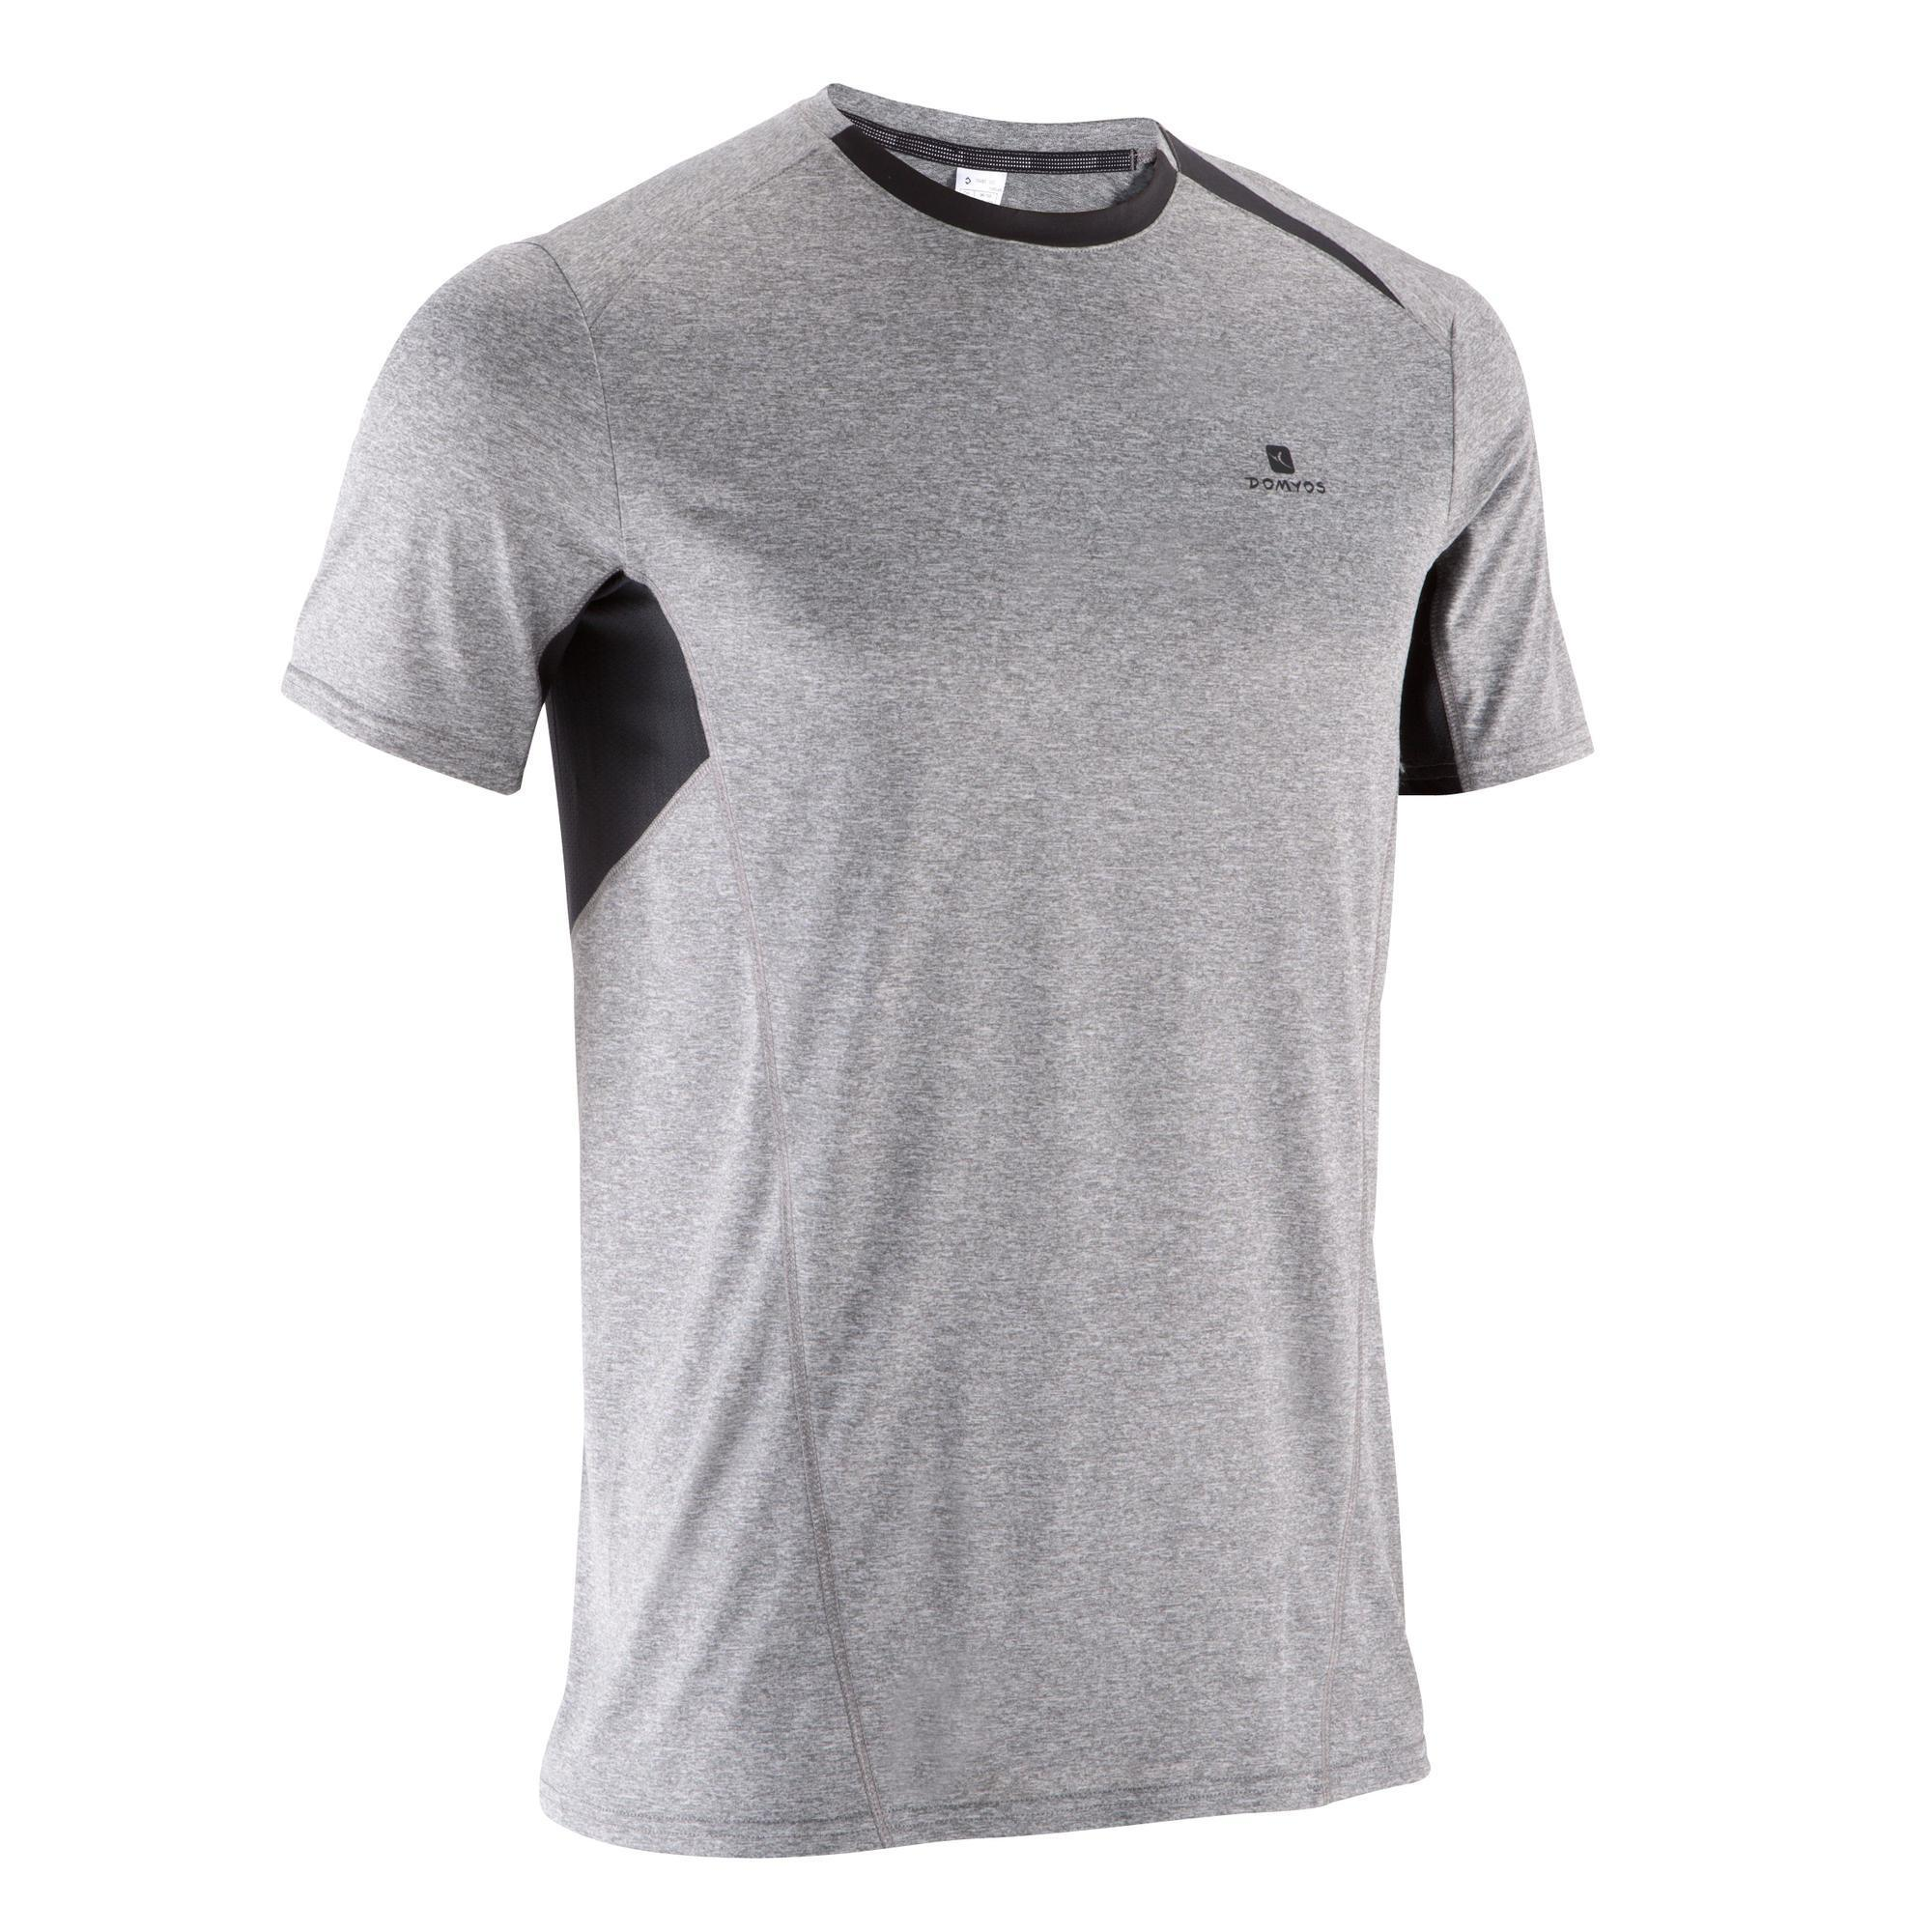 64e89001e Men's fitness and bodybuilding clothing | Domyos by Decathlon